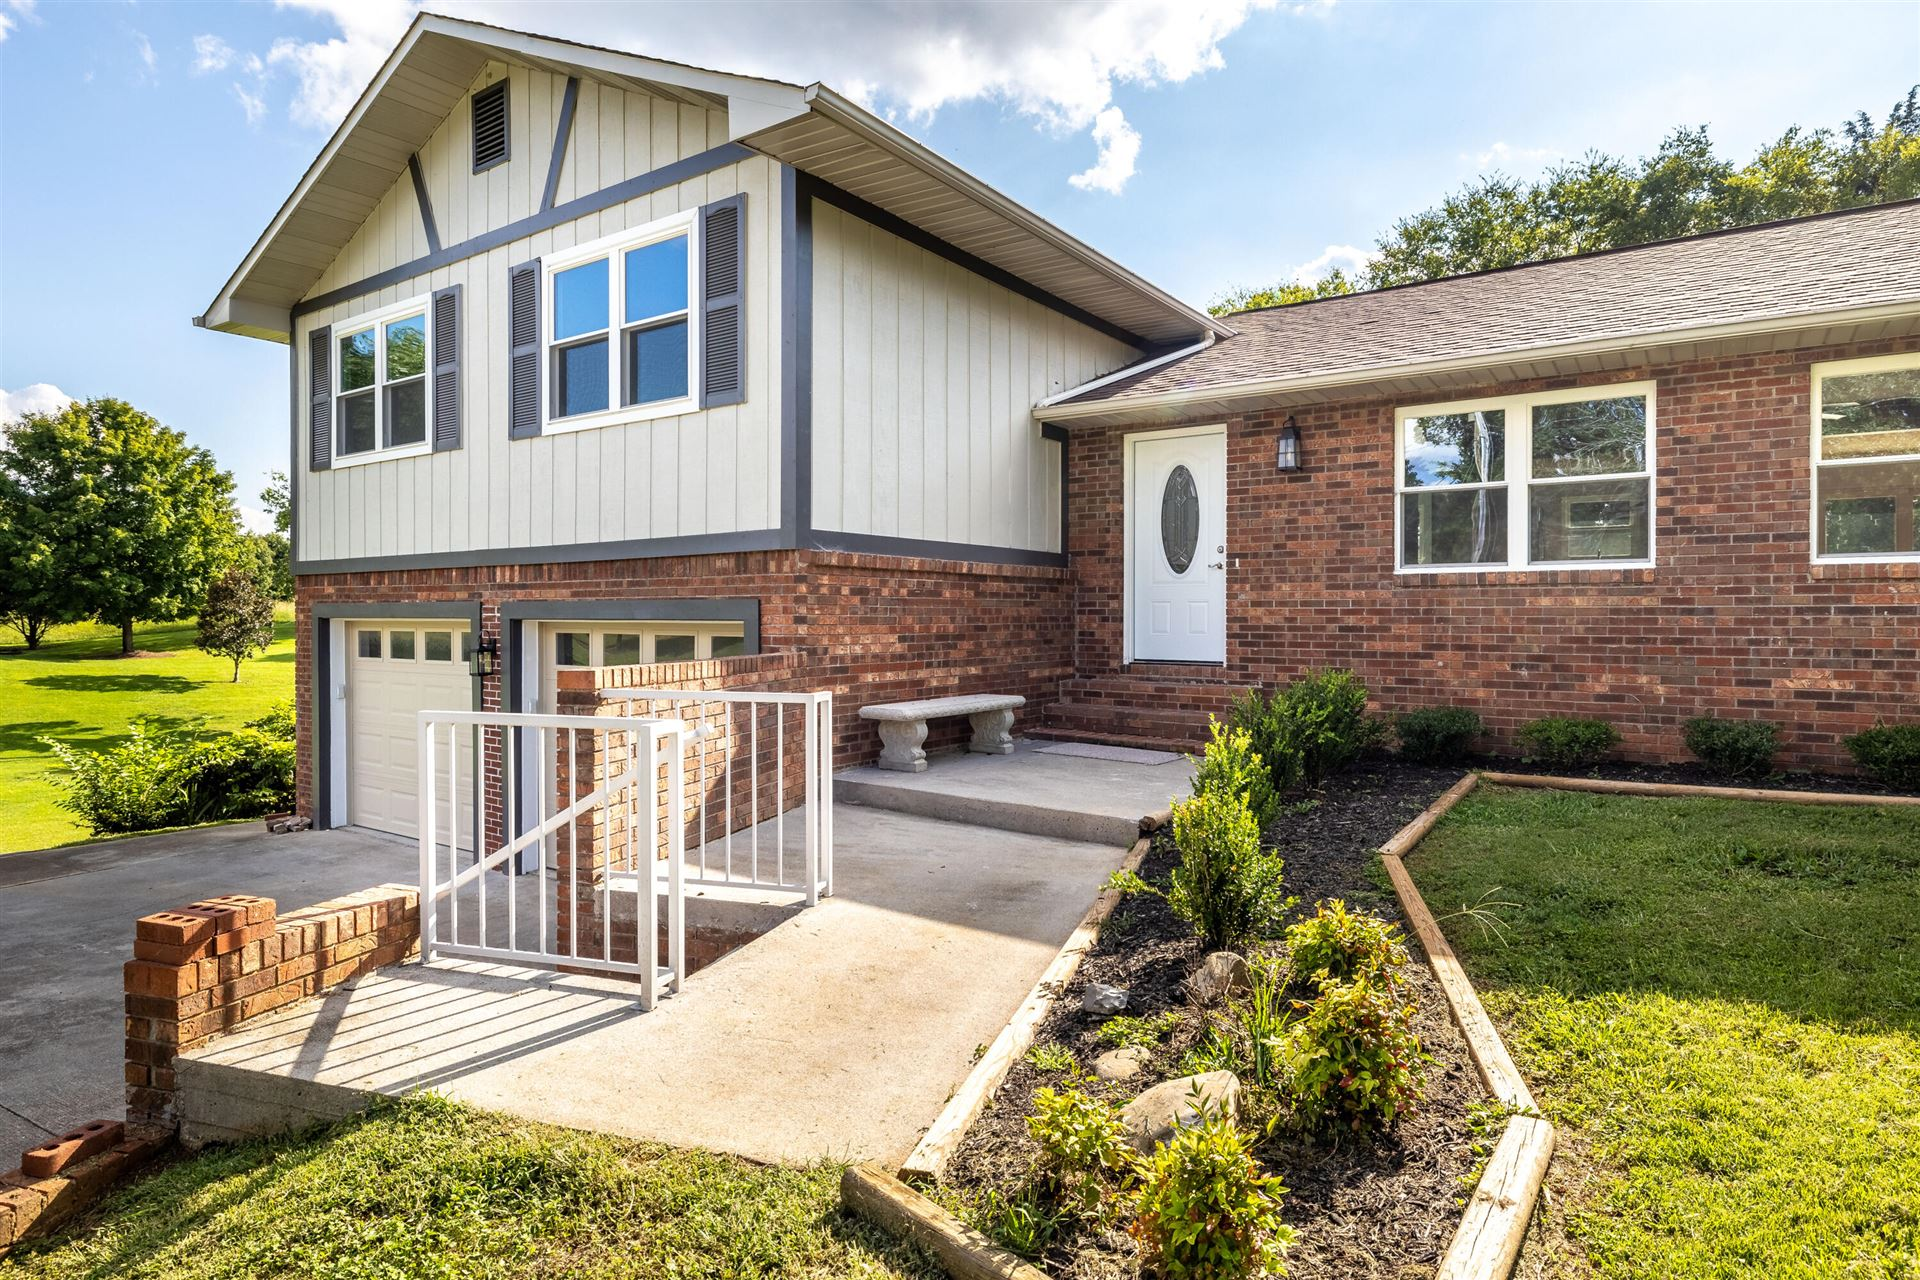 Photo of 1131 S Fork Drive, Sevierville, TN 37862 (MLS # 1166491)